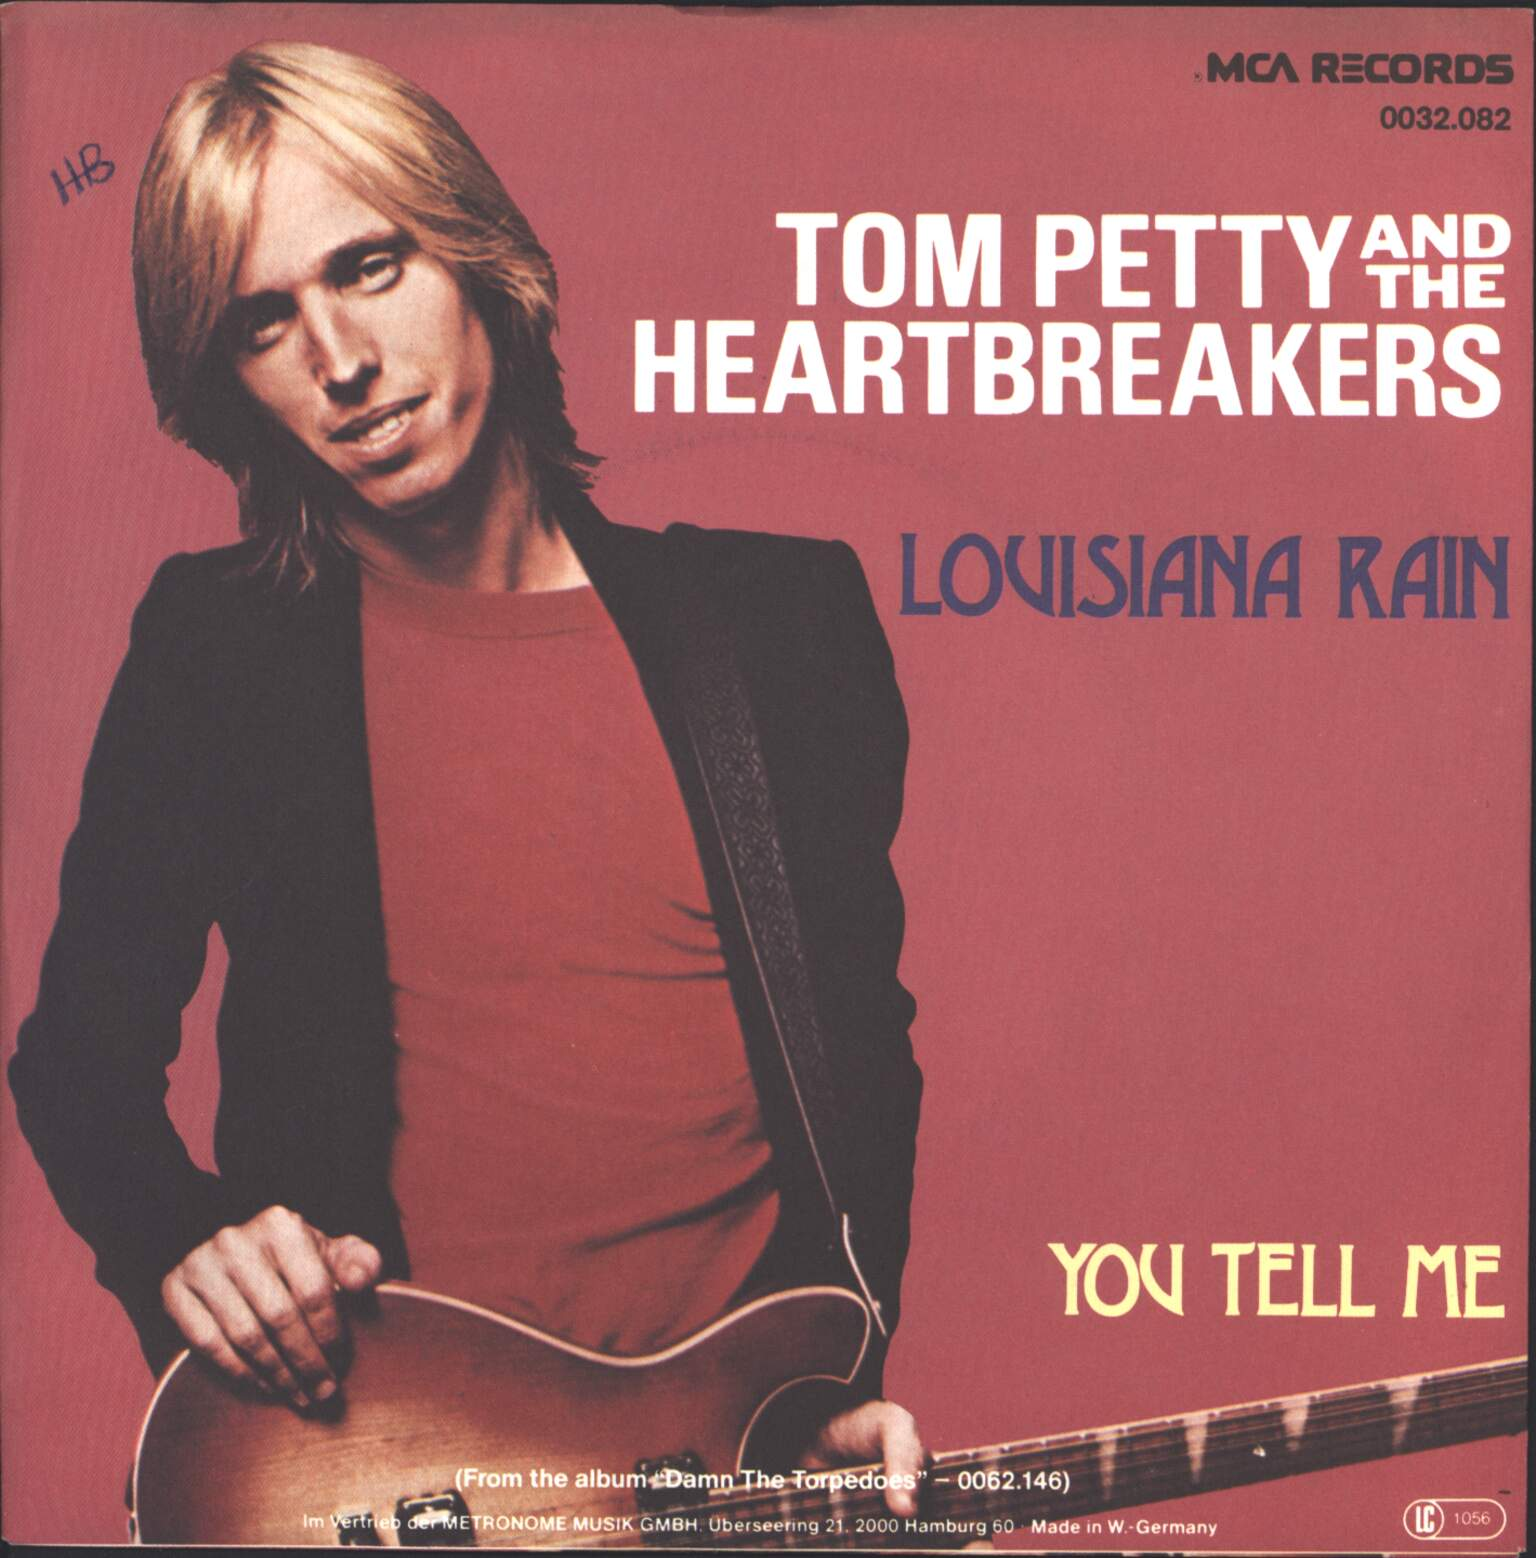 "Tom Petty And The Heartbreakers: Louisiana Rain / You Tell Me, 1×7"" Single (Vinyl)"